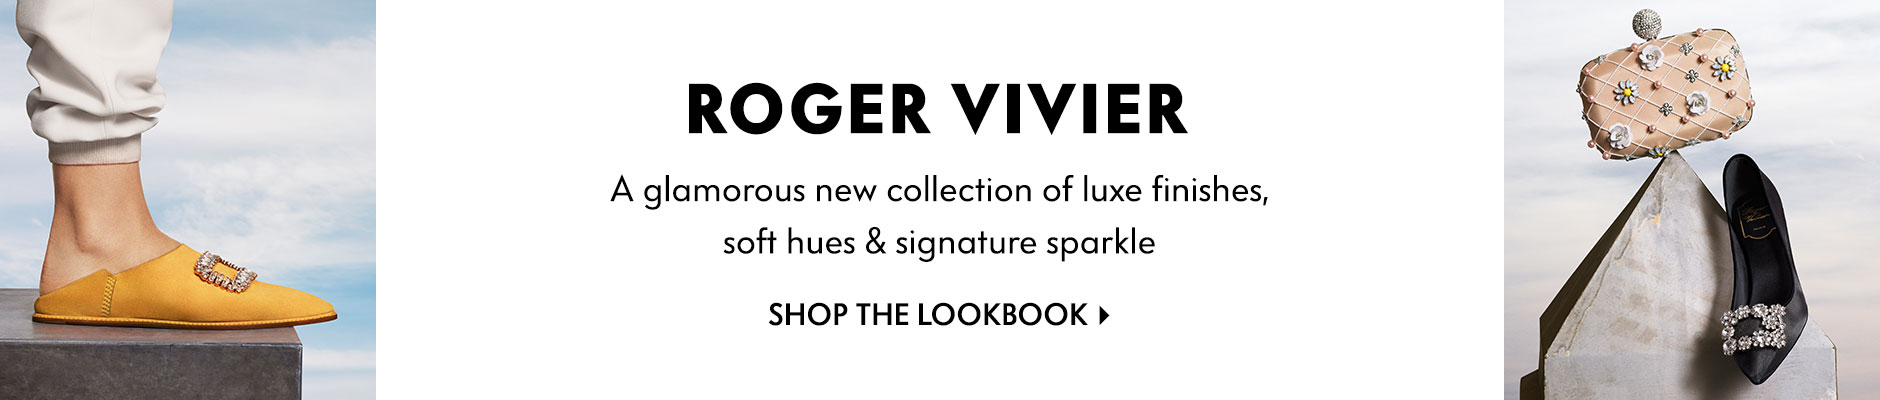 Roger Vivier Lookbook